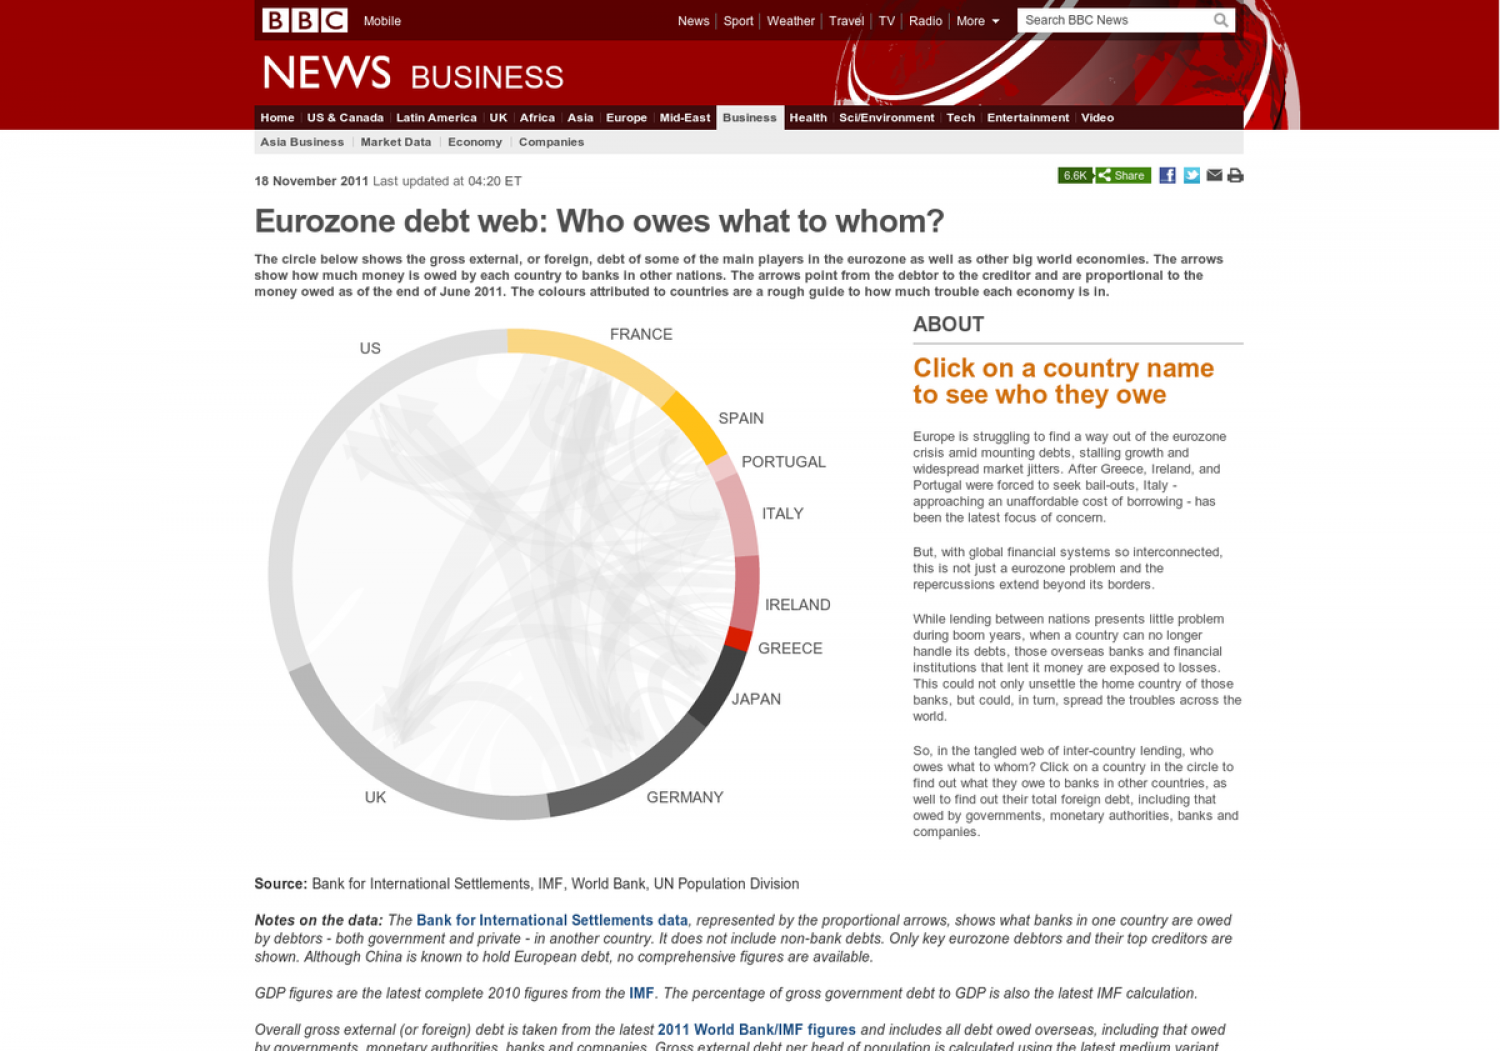 Eurozone debt web: Who owes what to whom? Infographic